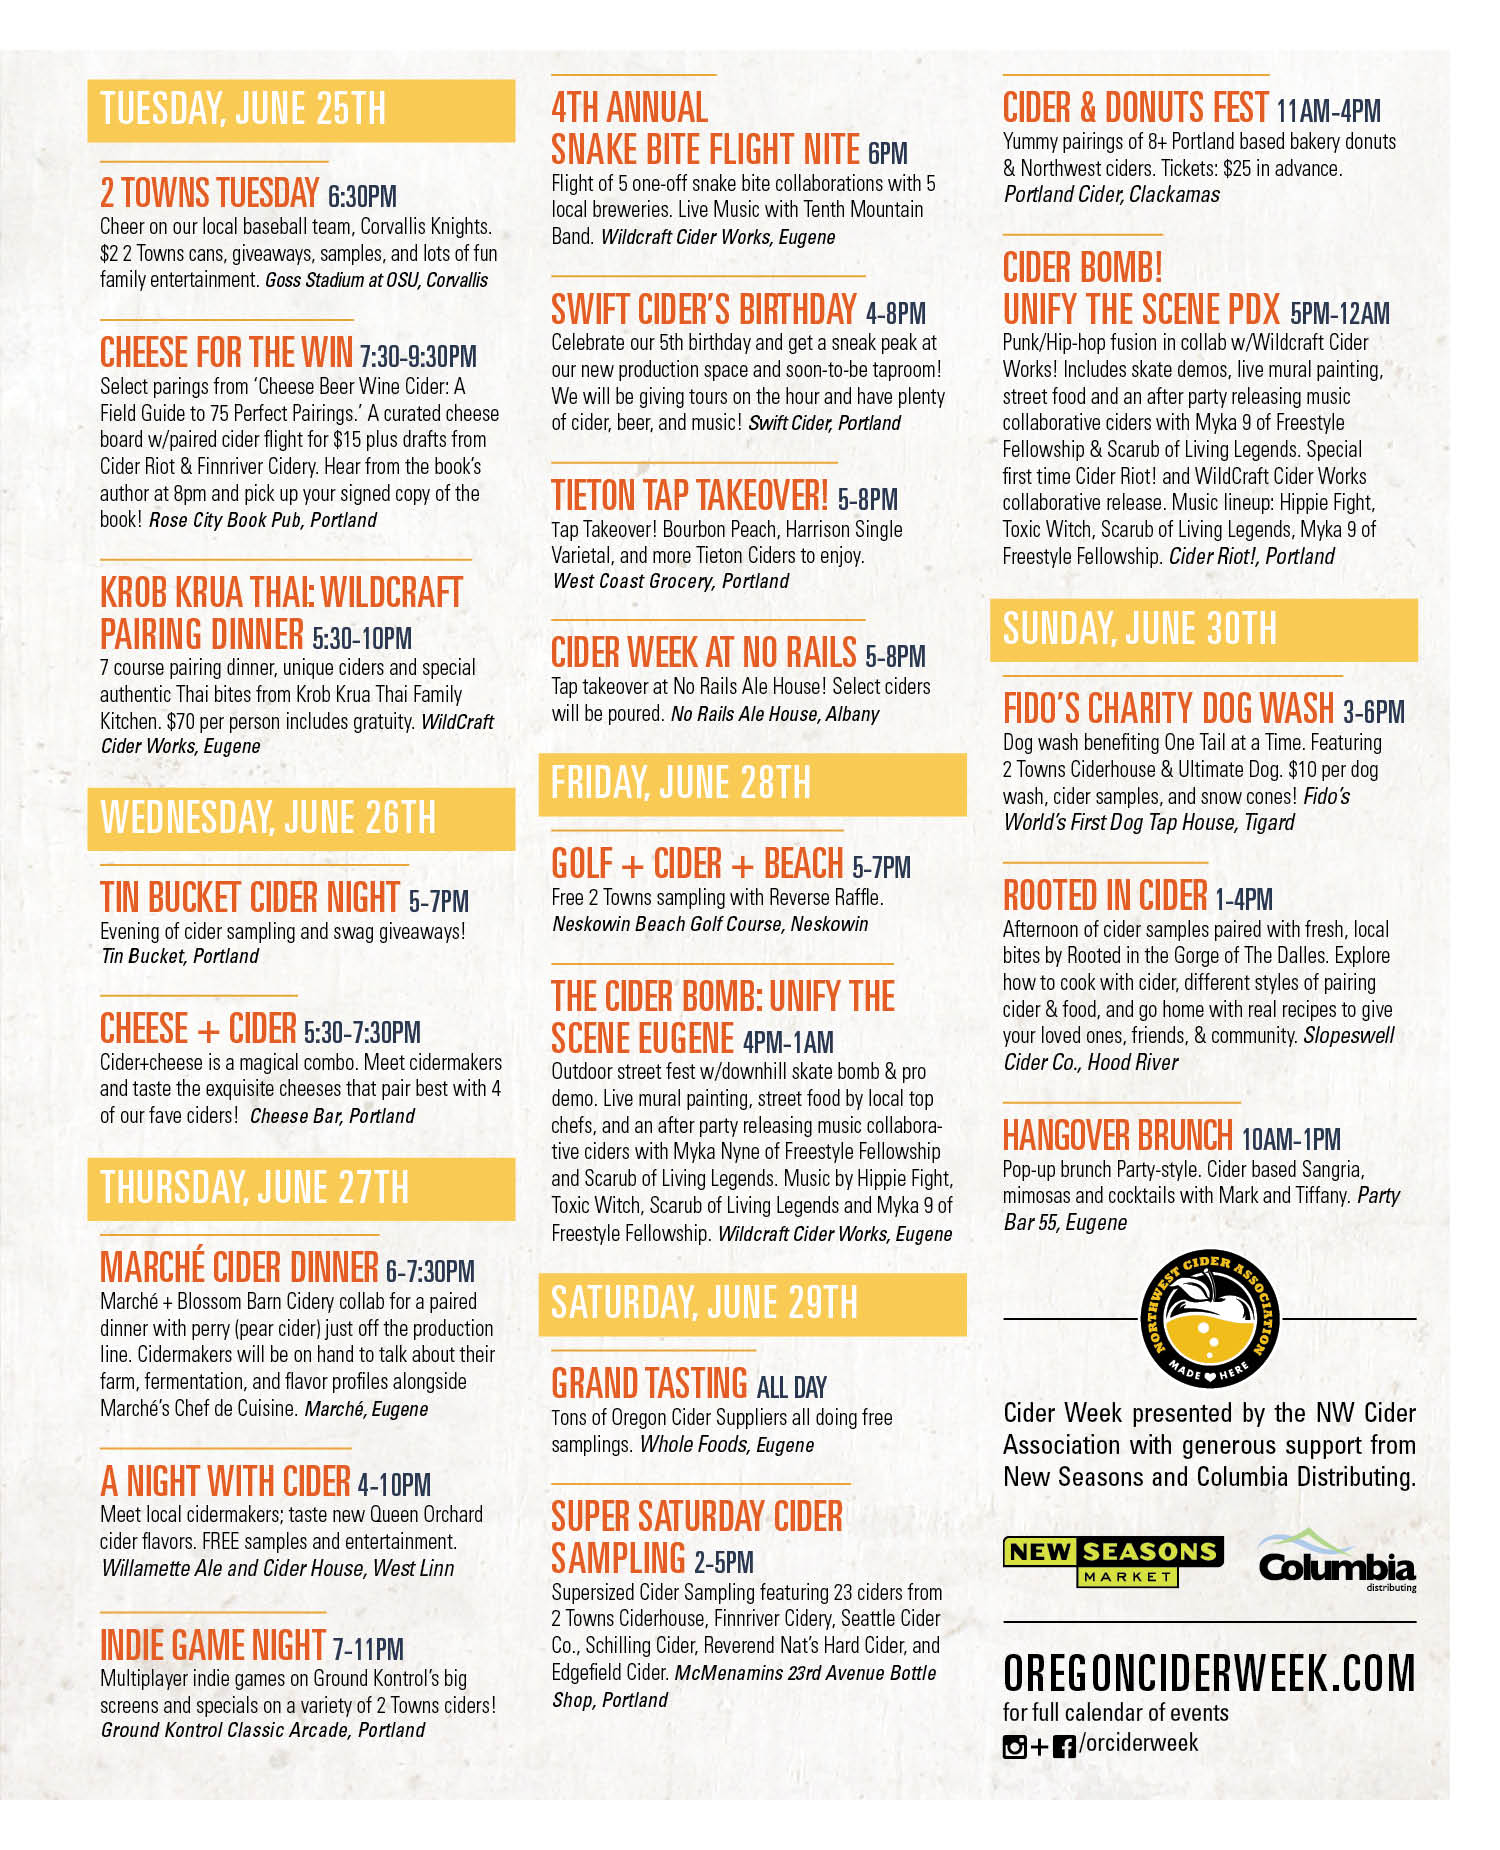 2019 NWCA Oregon Cider Week Calendar of Events Page 2